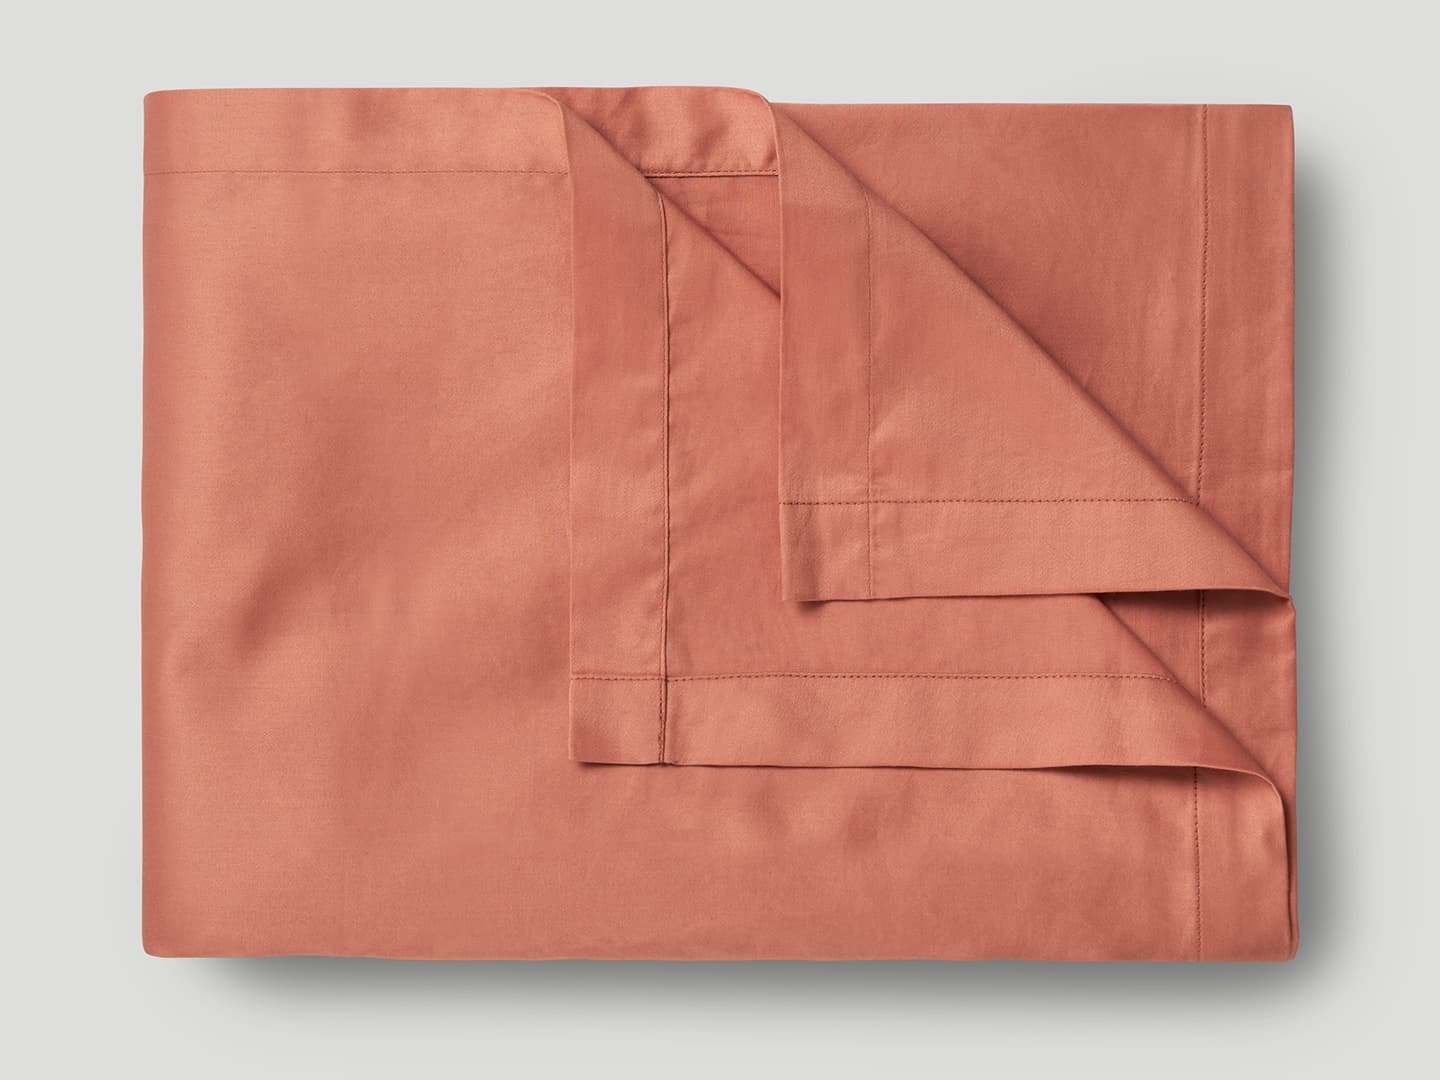 Flat Sheet Lind - Pink Terracotta in the group Bedding / Flat Sheets at A L V A (1109)